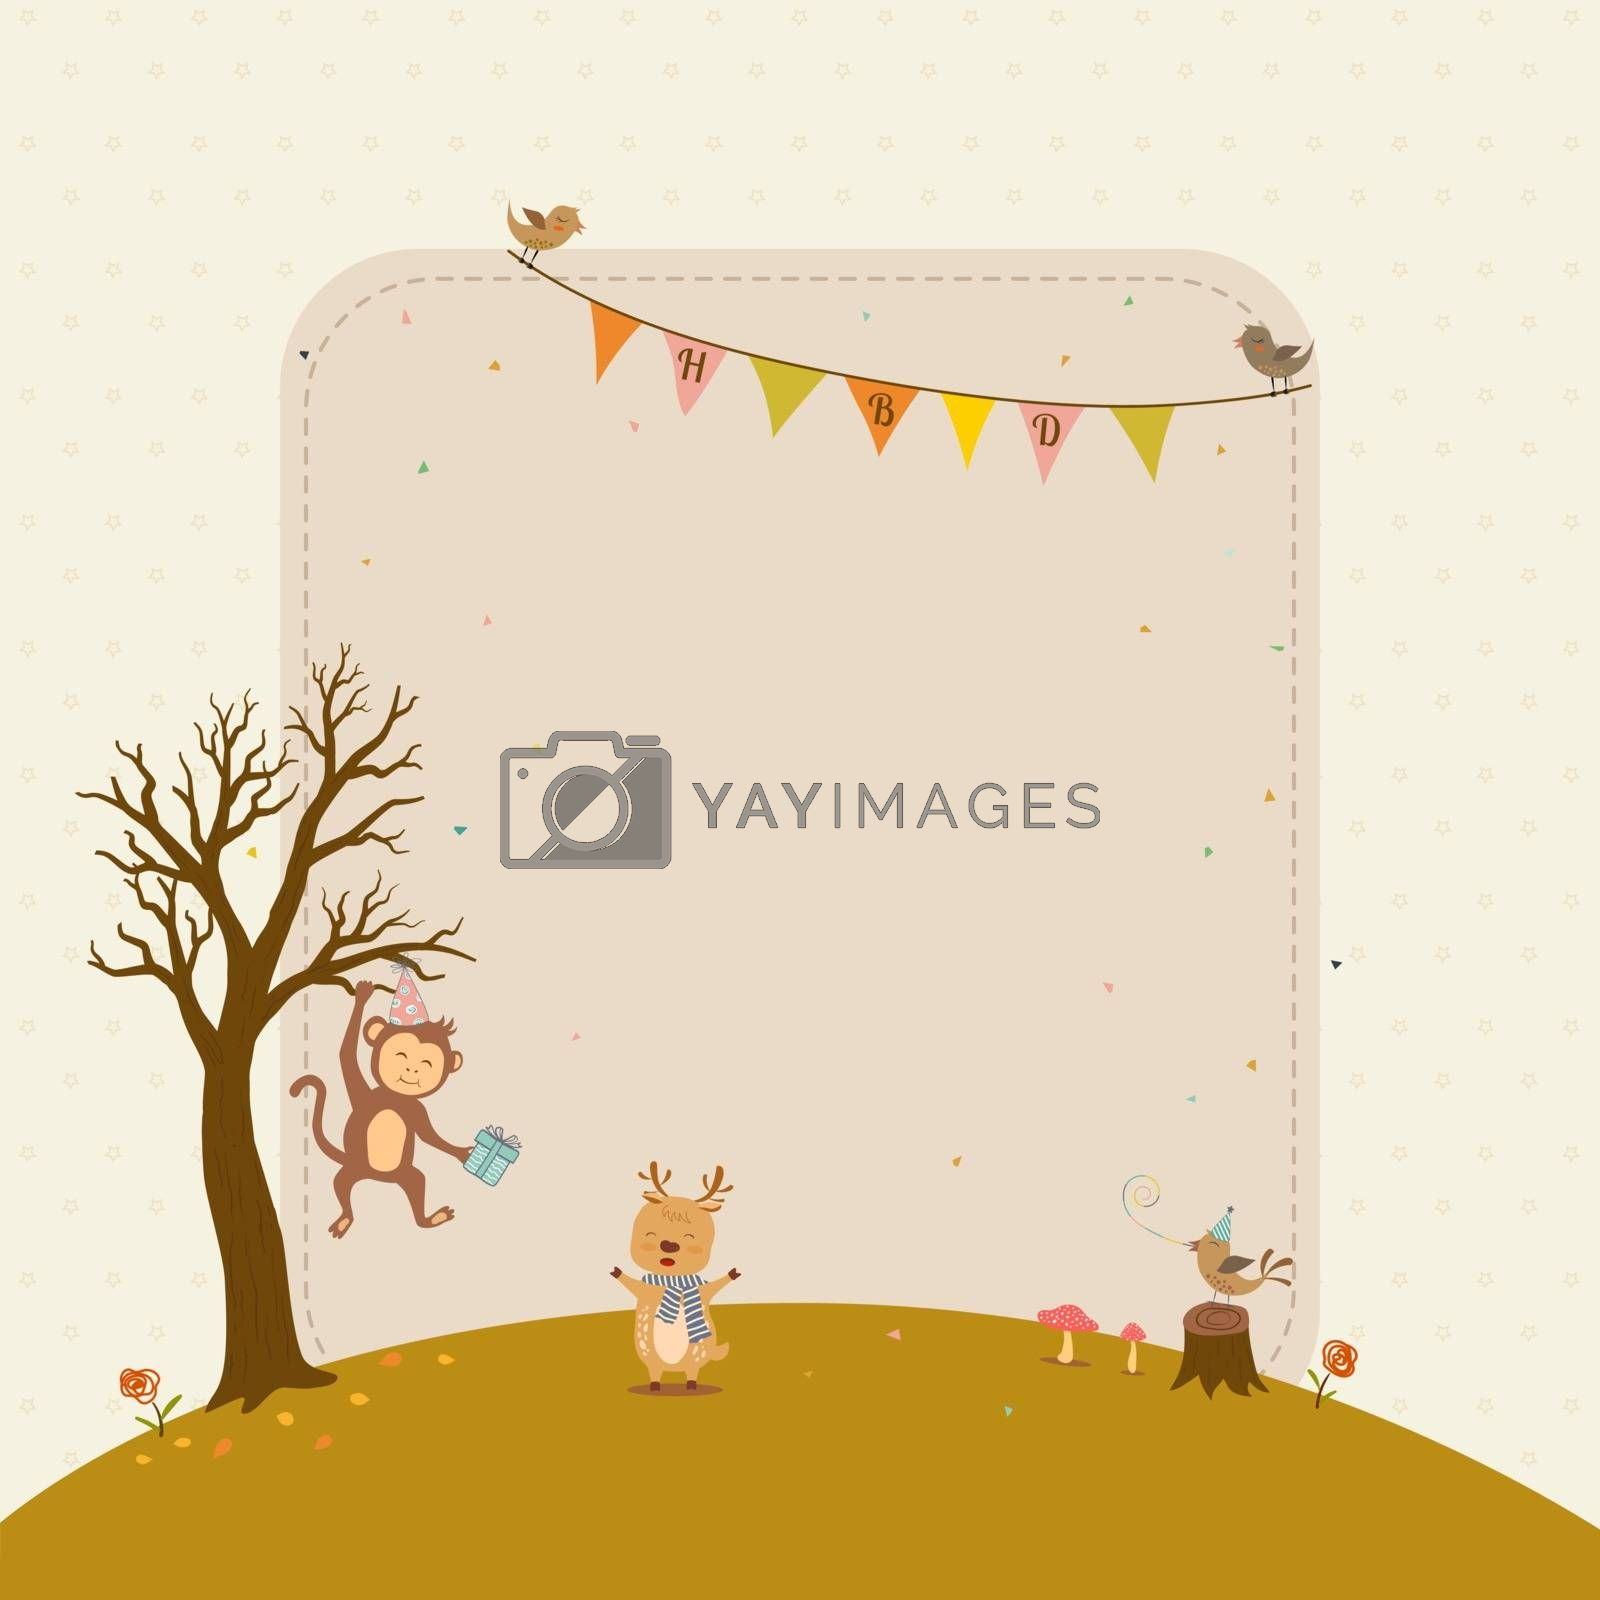 Happy birthday card with cute animals cartoon,for celebrate party,greeting card or invitation by PIMPAKA